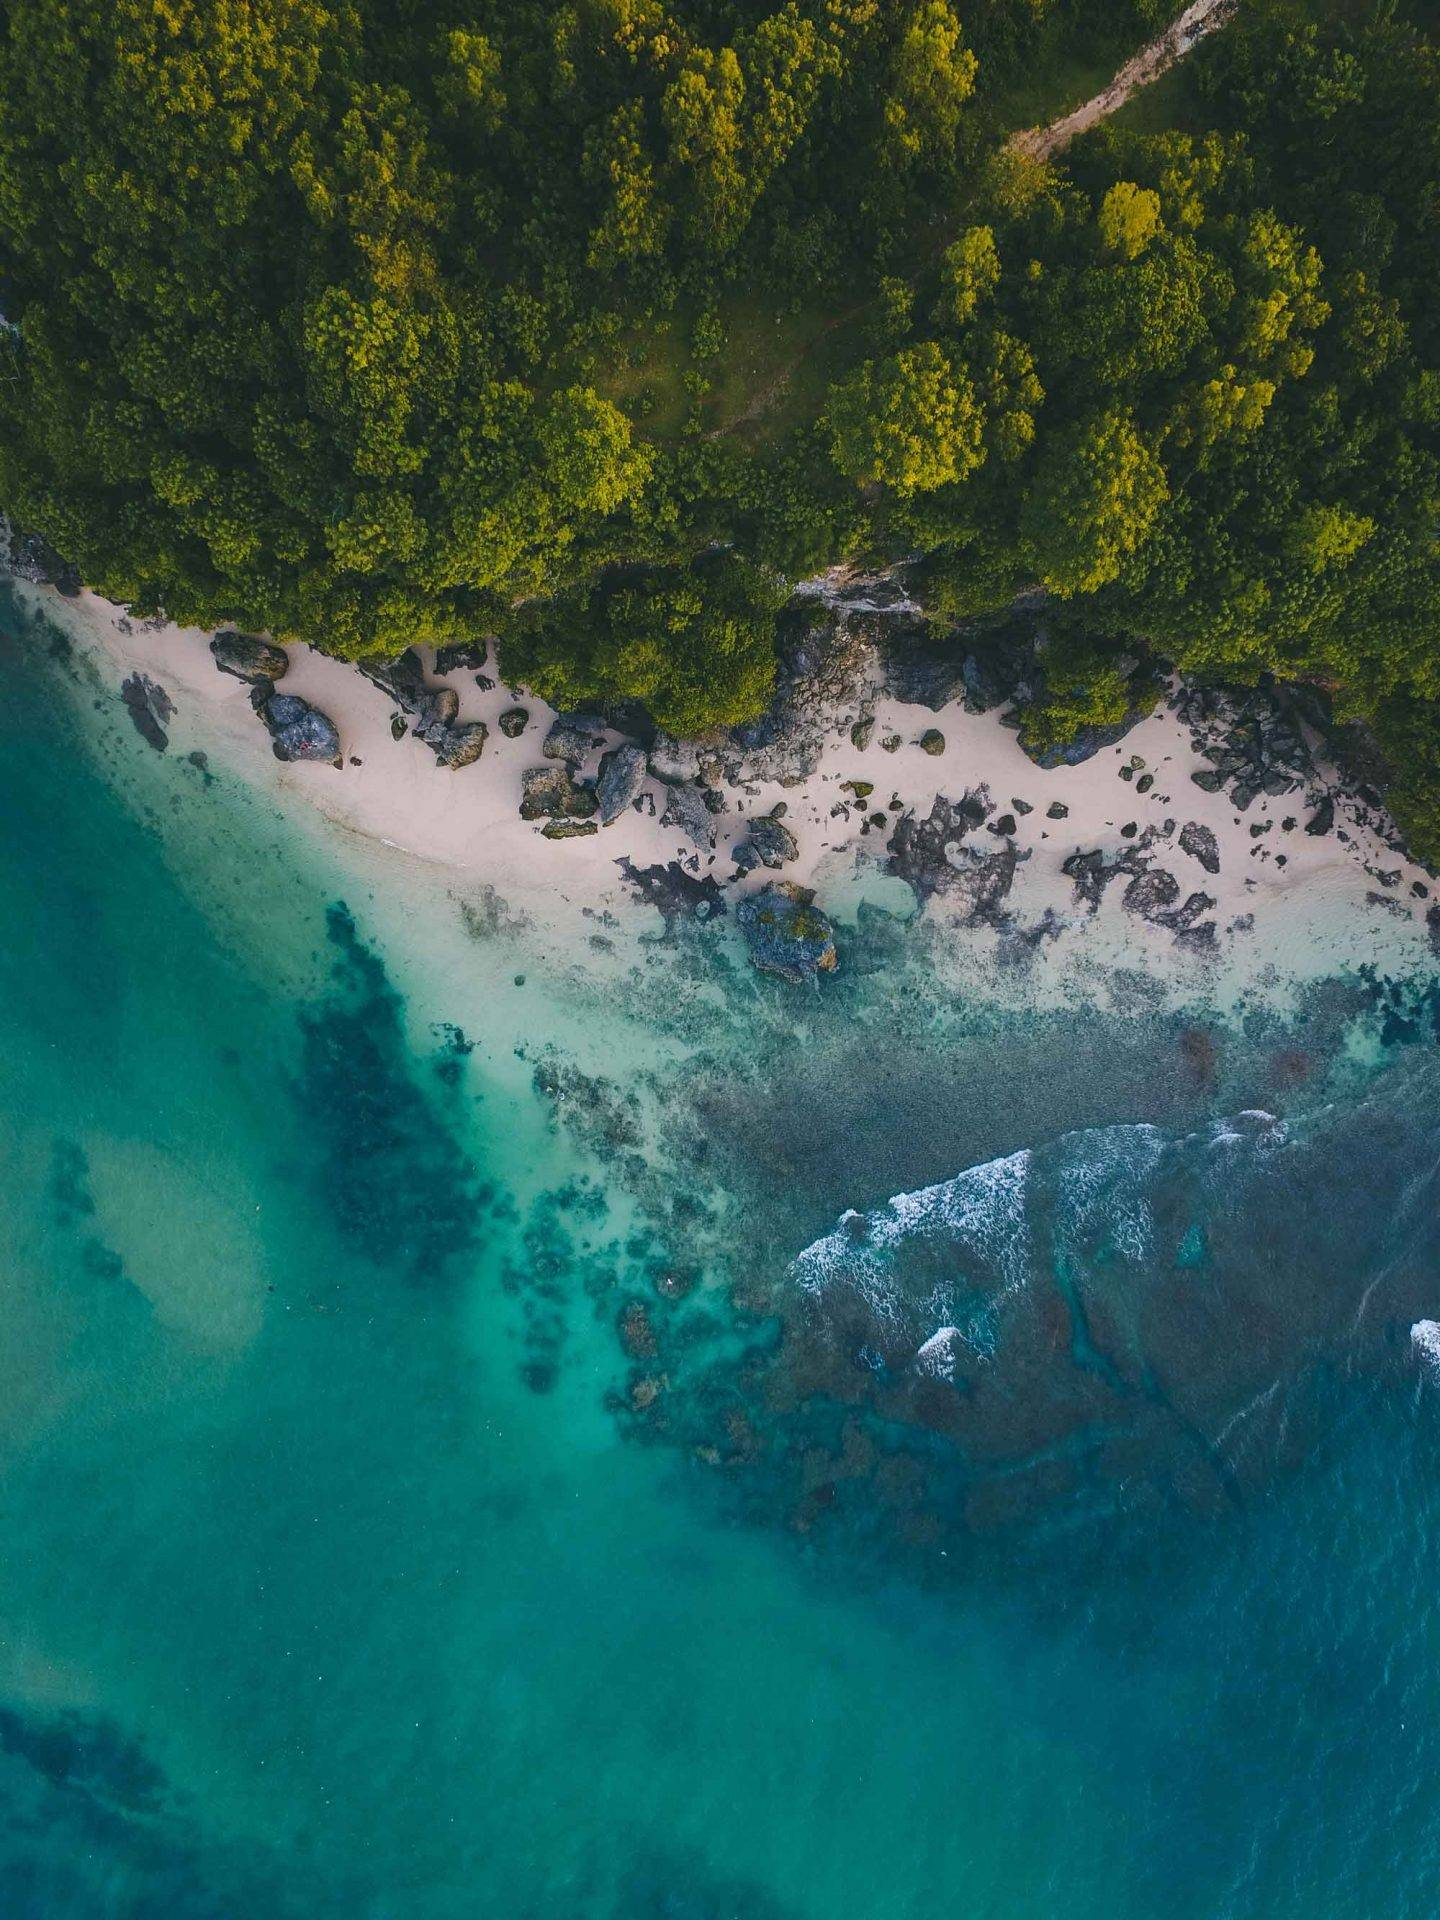 Not sure where to go in Bali? How about outside the island? There are so many great places to visit in Indonesia that are also worth your time- like these islands.